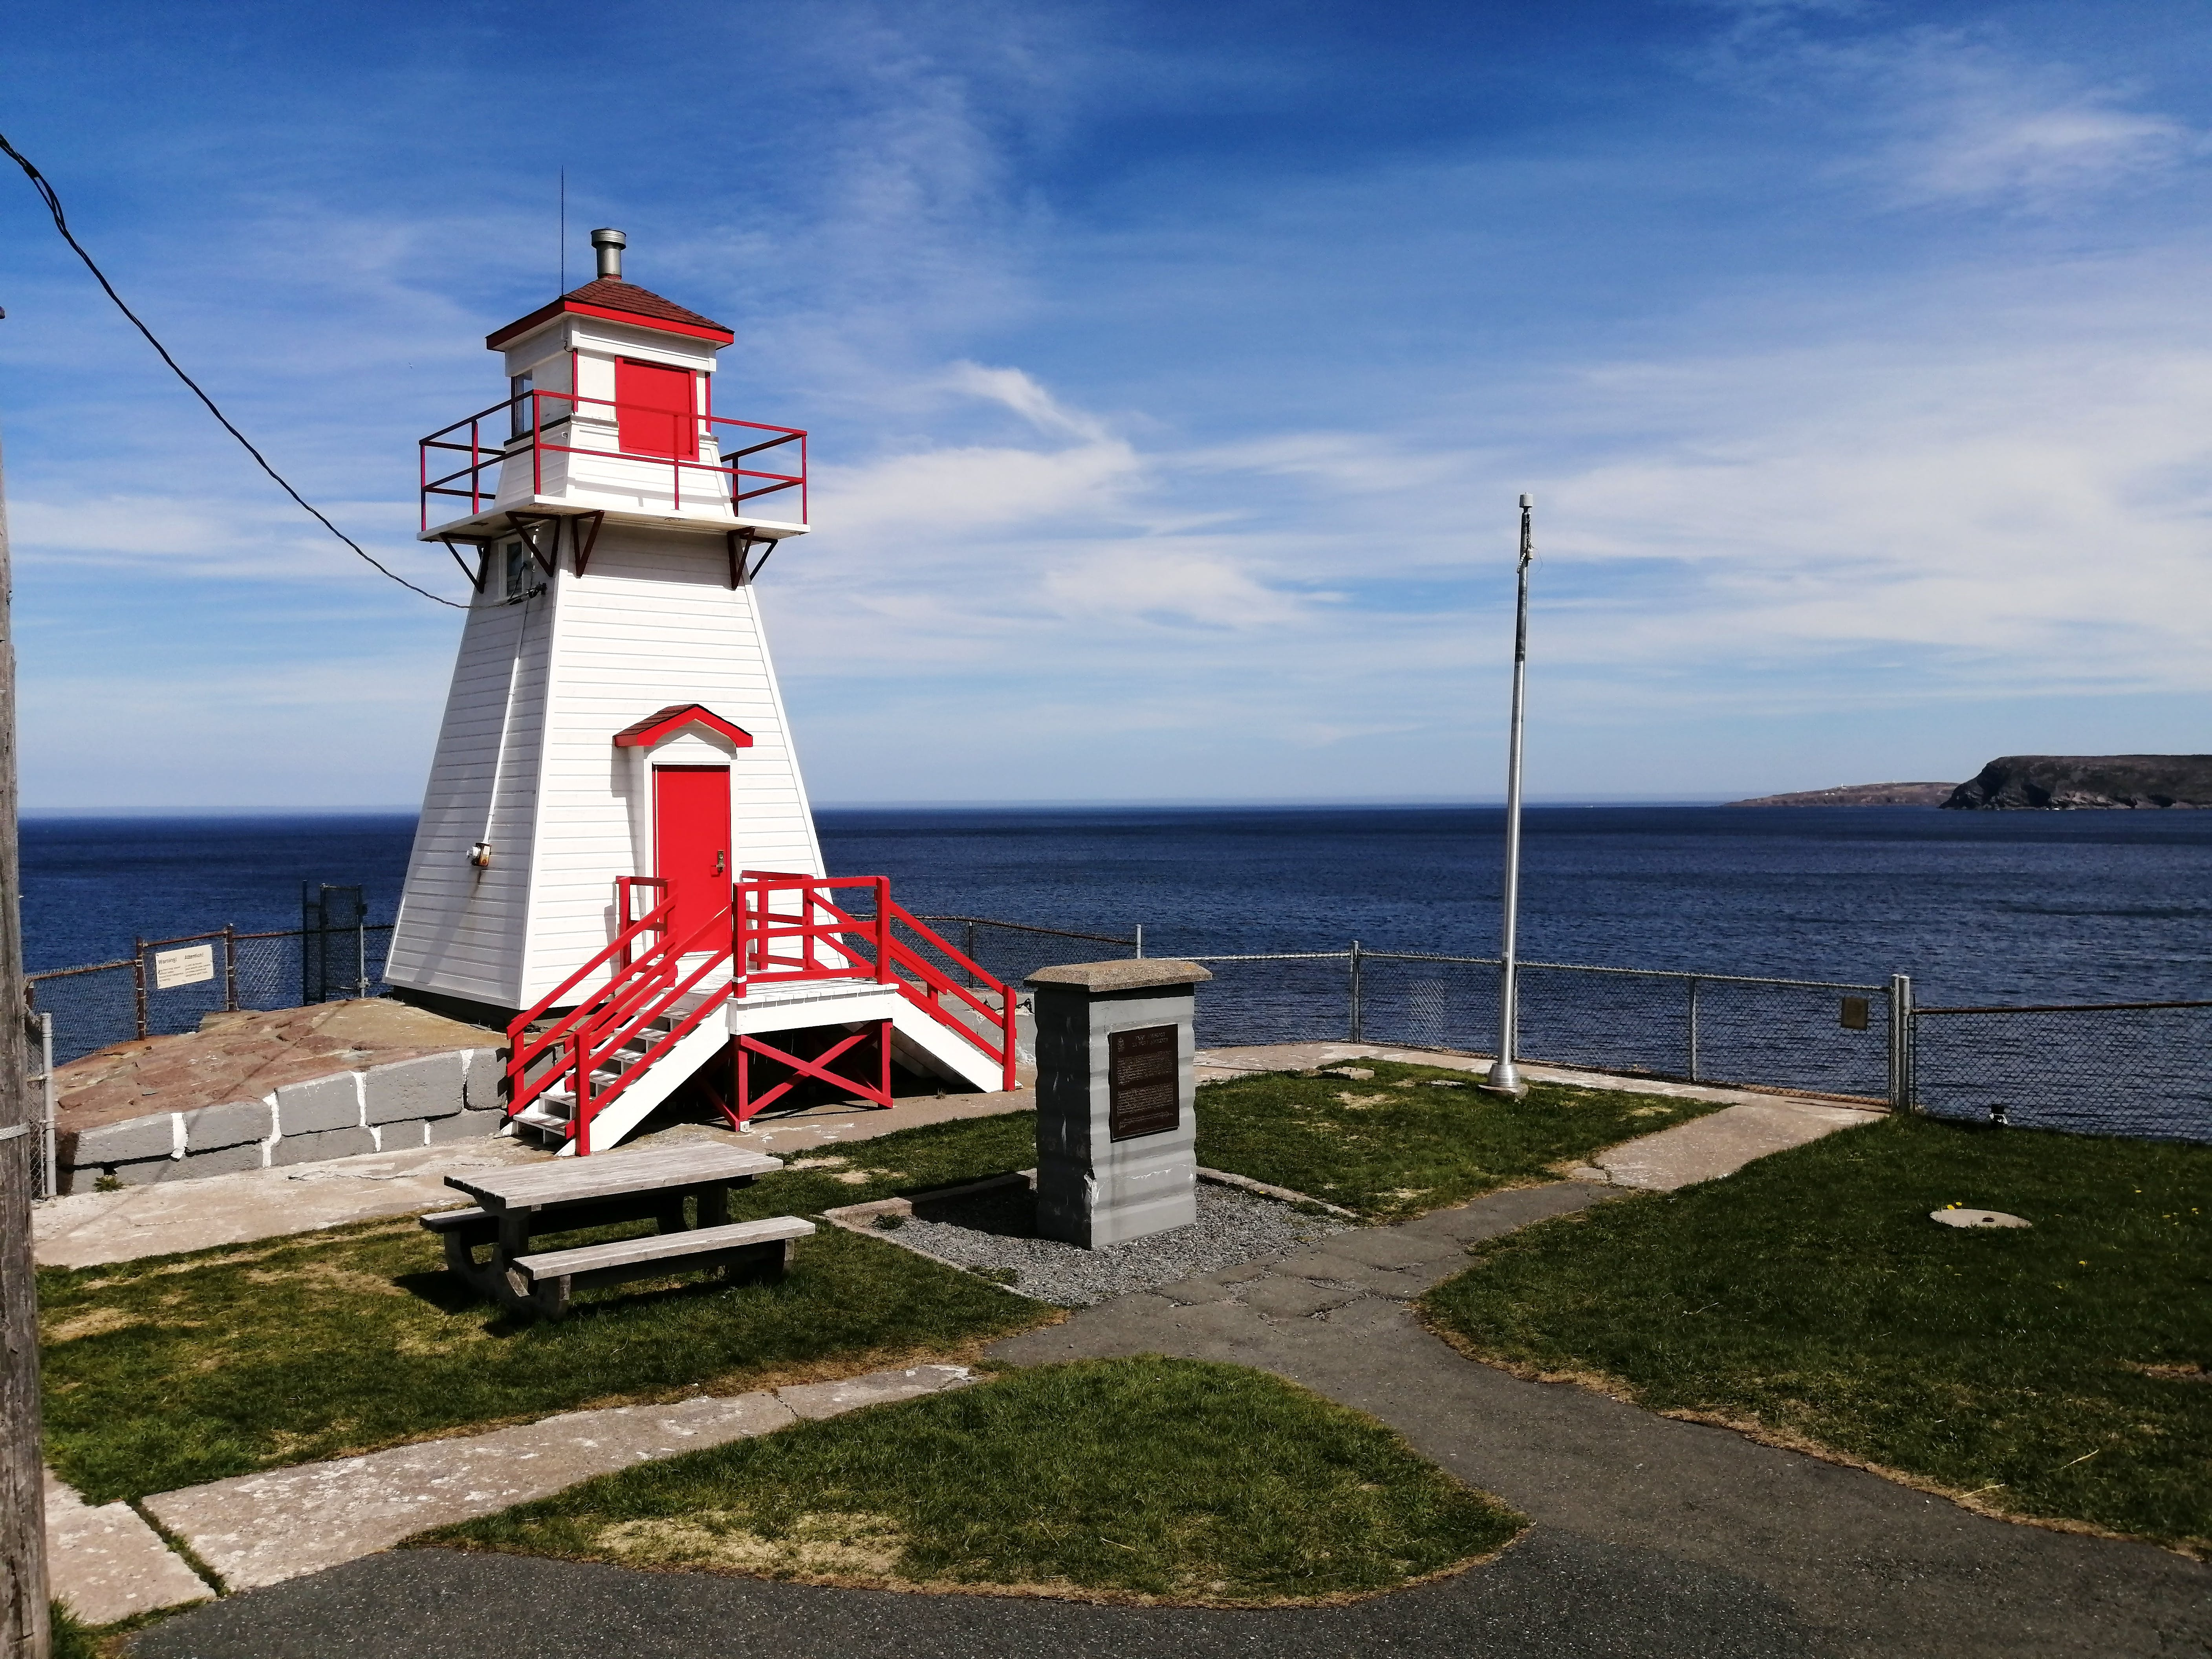 It looks like Gary Mitchell chose a beautiful day to do a little sightseeing. No fog in this lovely photo of the Fort Amherst lighthouse.  This heritage lighthouse is a square, tapered, wooden tower overlooking the Narrows, the channel leading to St. John's Harbour in Newfoundland and Labrador. It is located where Fort Amherst, a British military tower and battery, once stood. This lighthouse was built in 1951 and is the third lighthouse on the site.